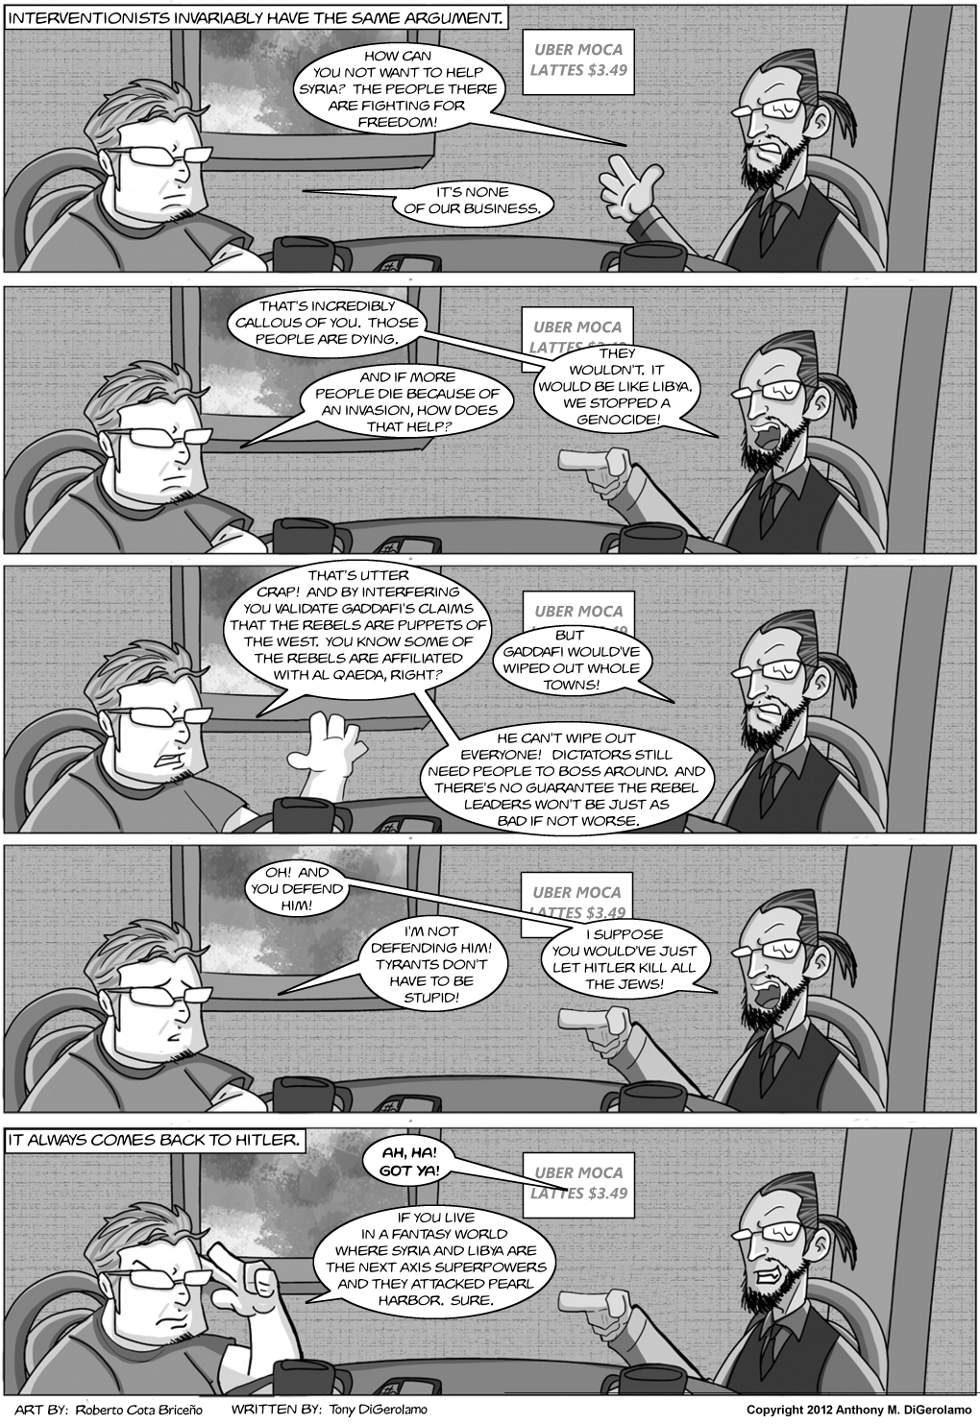 The Antiwar Comic:  The Interventionists' Argument